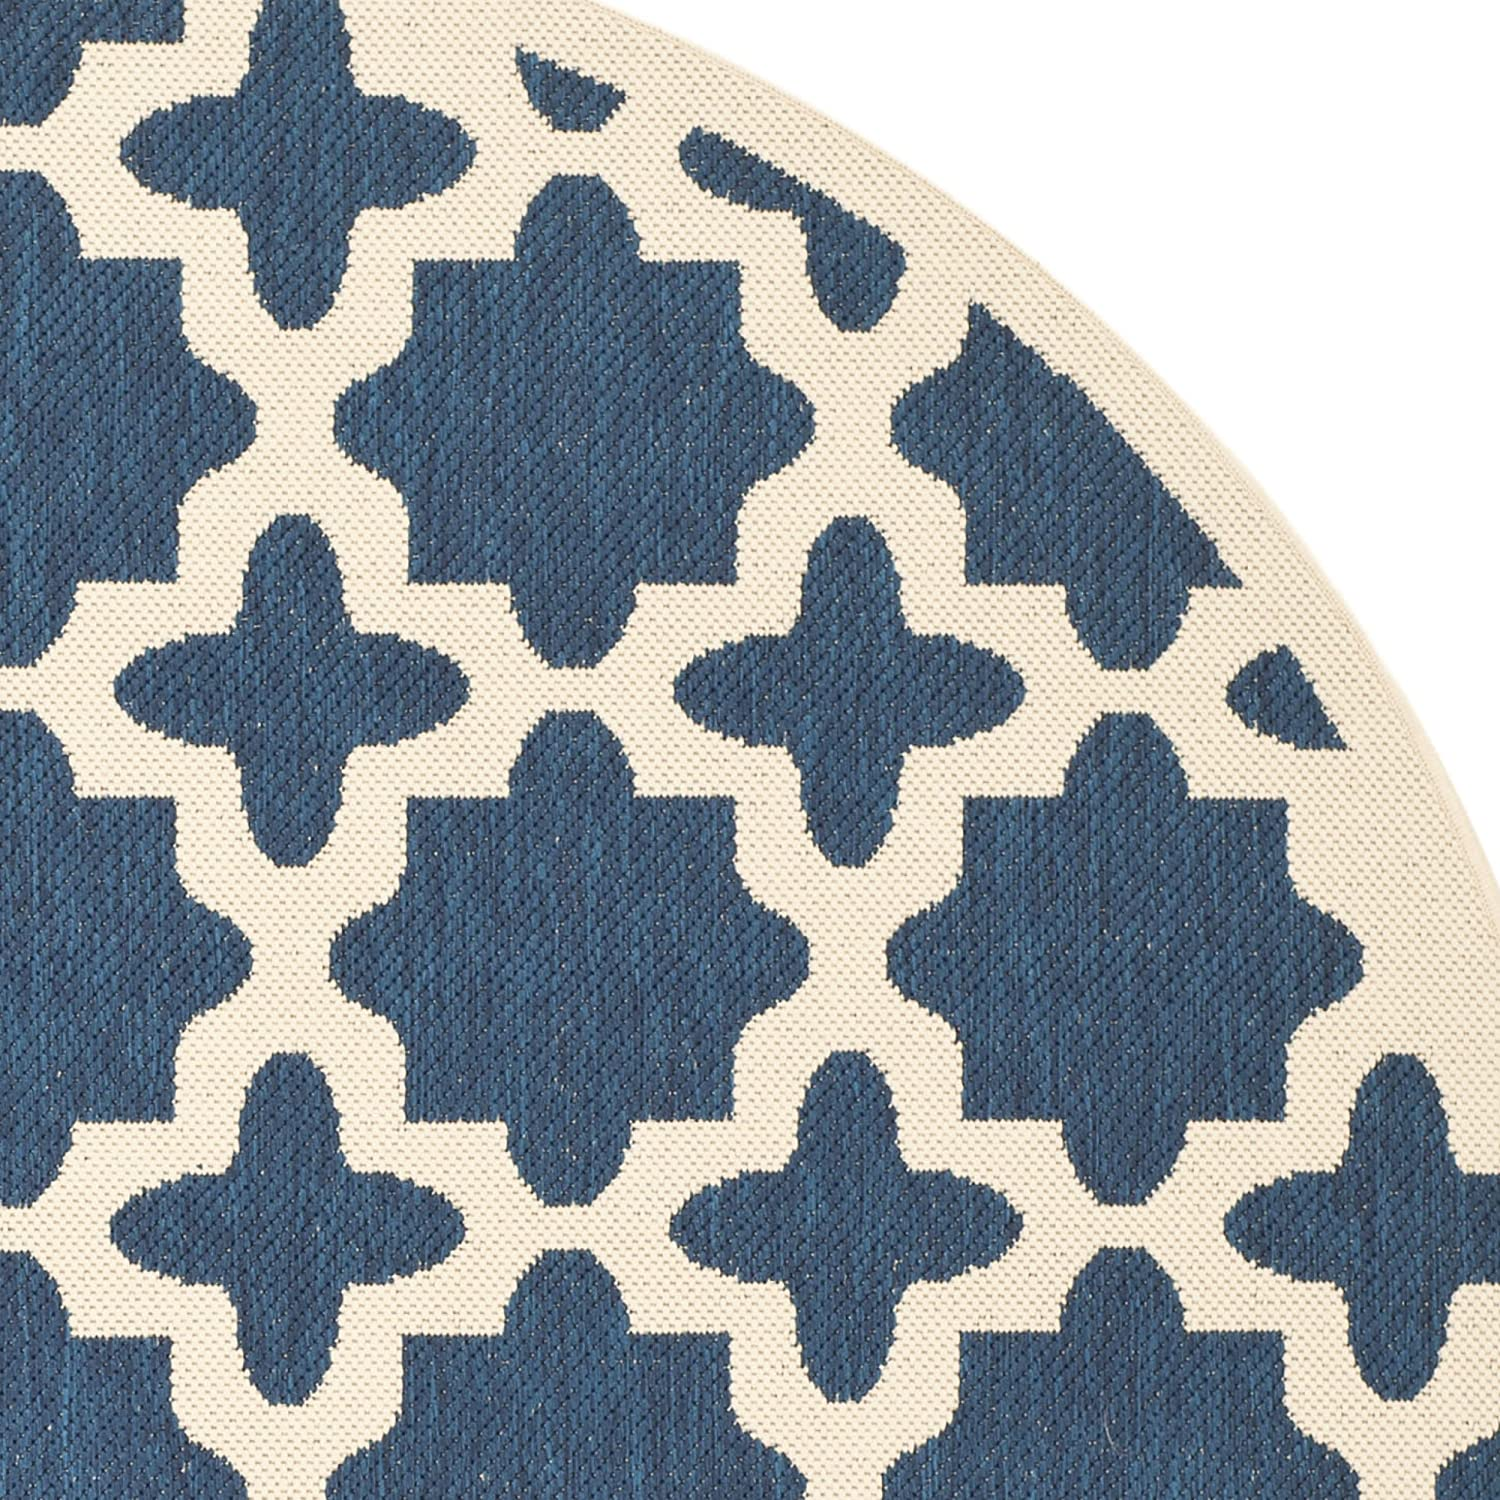 Safavieh Courtyard Collection CY6913-242 Brown and Bone Indoor// Outdoor Area Rug CY6913-242-3 27 x 5